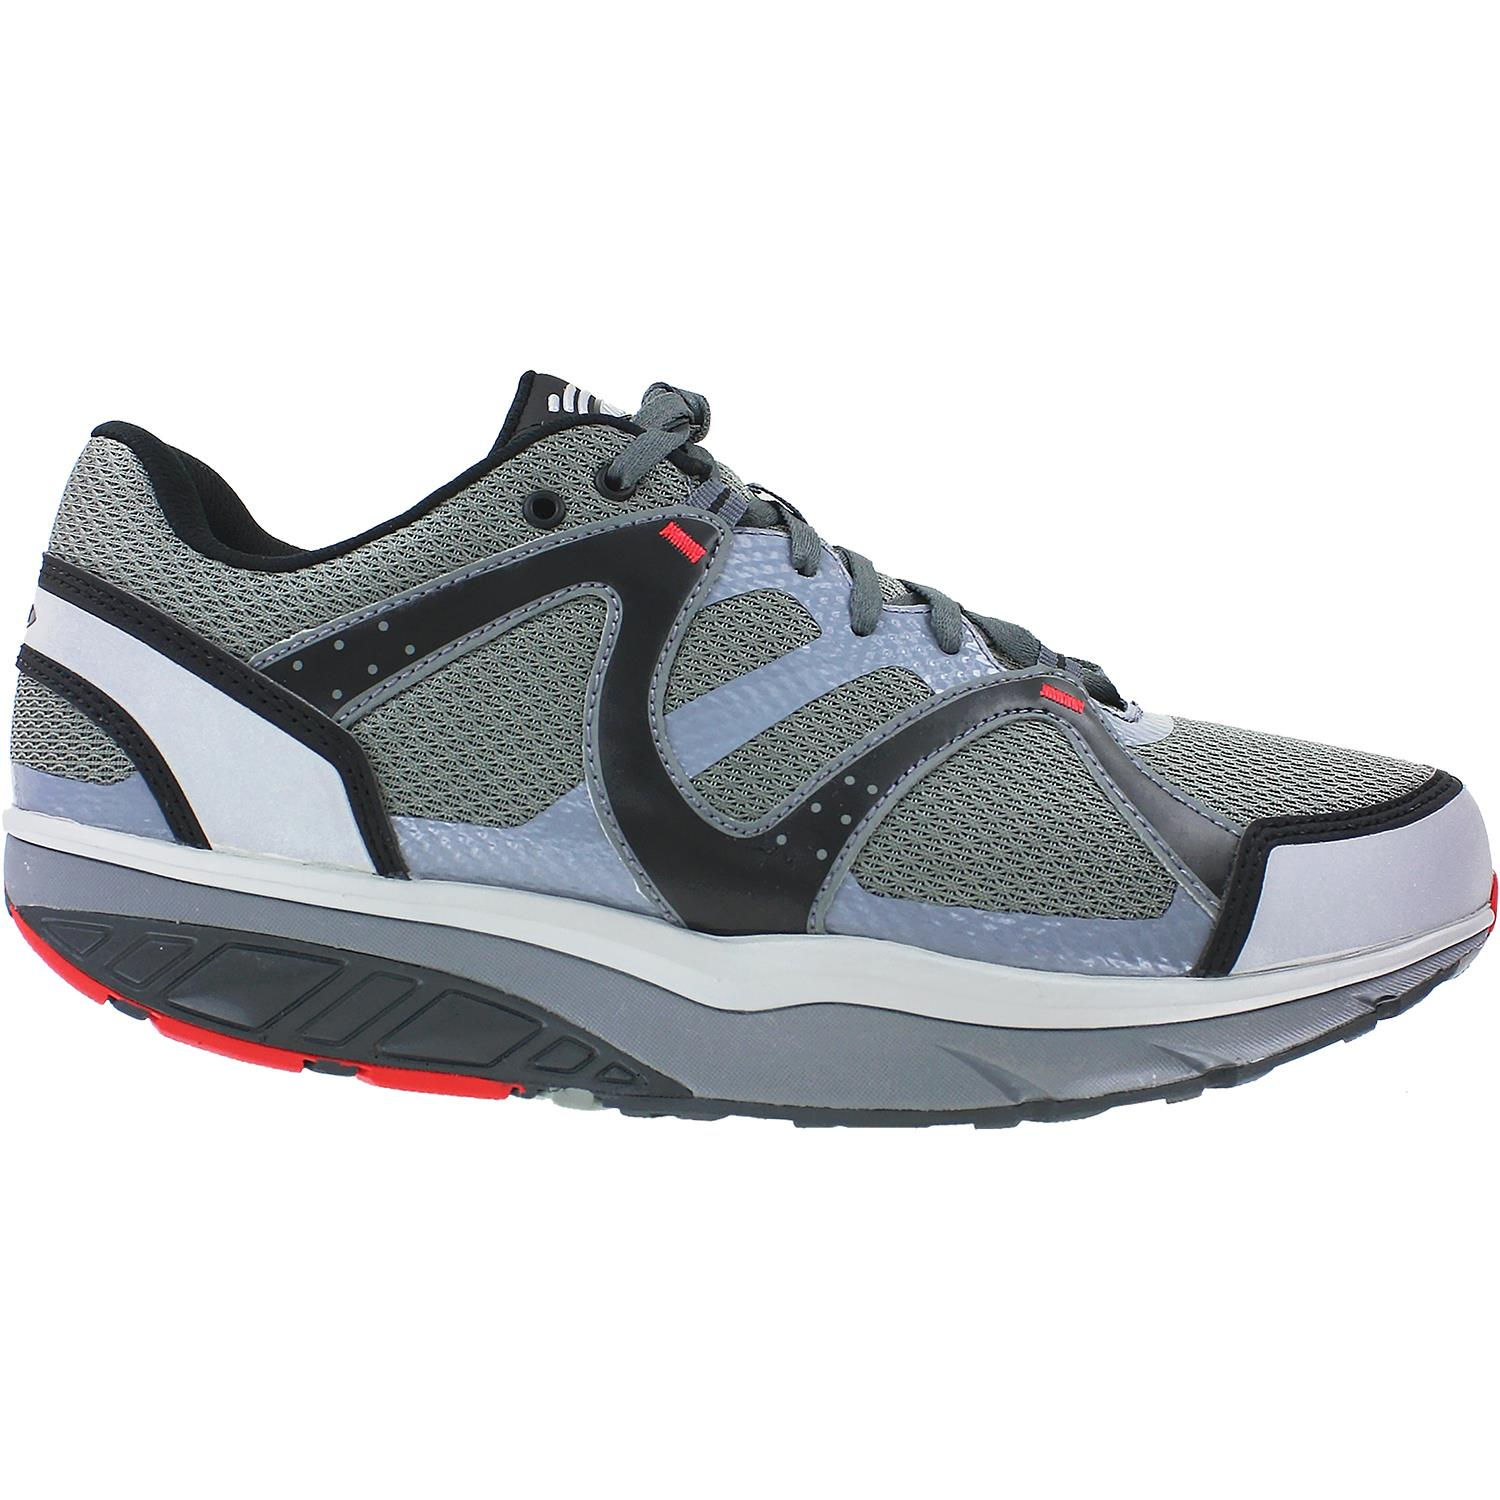 4ed9efb3d8e6 Mbt - MBT Men s Sabra Trail 6 Lace Up - Walmart.com